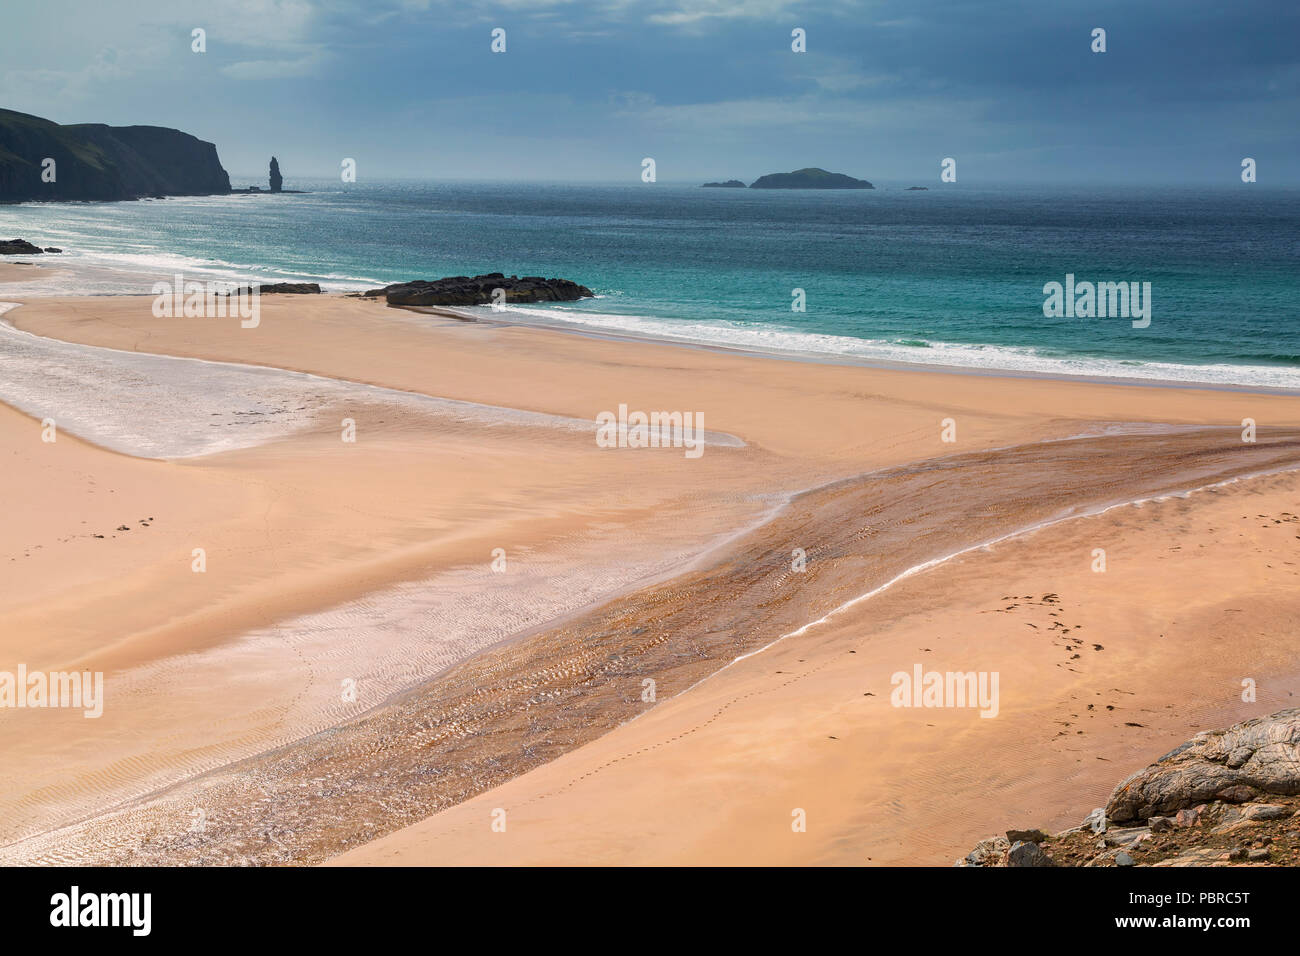 Sandwood Bay on the Northwest coast of Sutherland, Scotland, a terrific beach with golden sands, azure waters and a 180 foot sea stack at the far end. - Stock Image